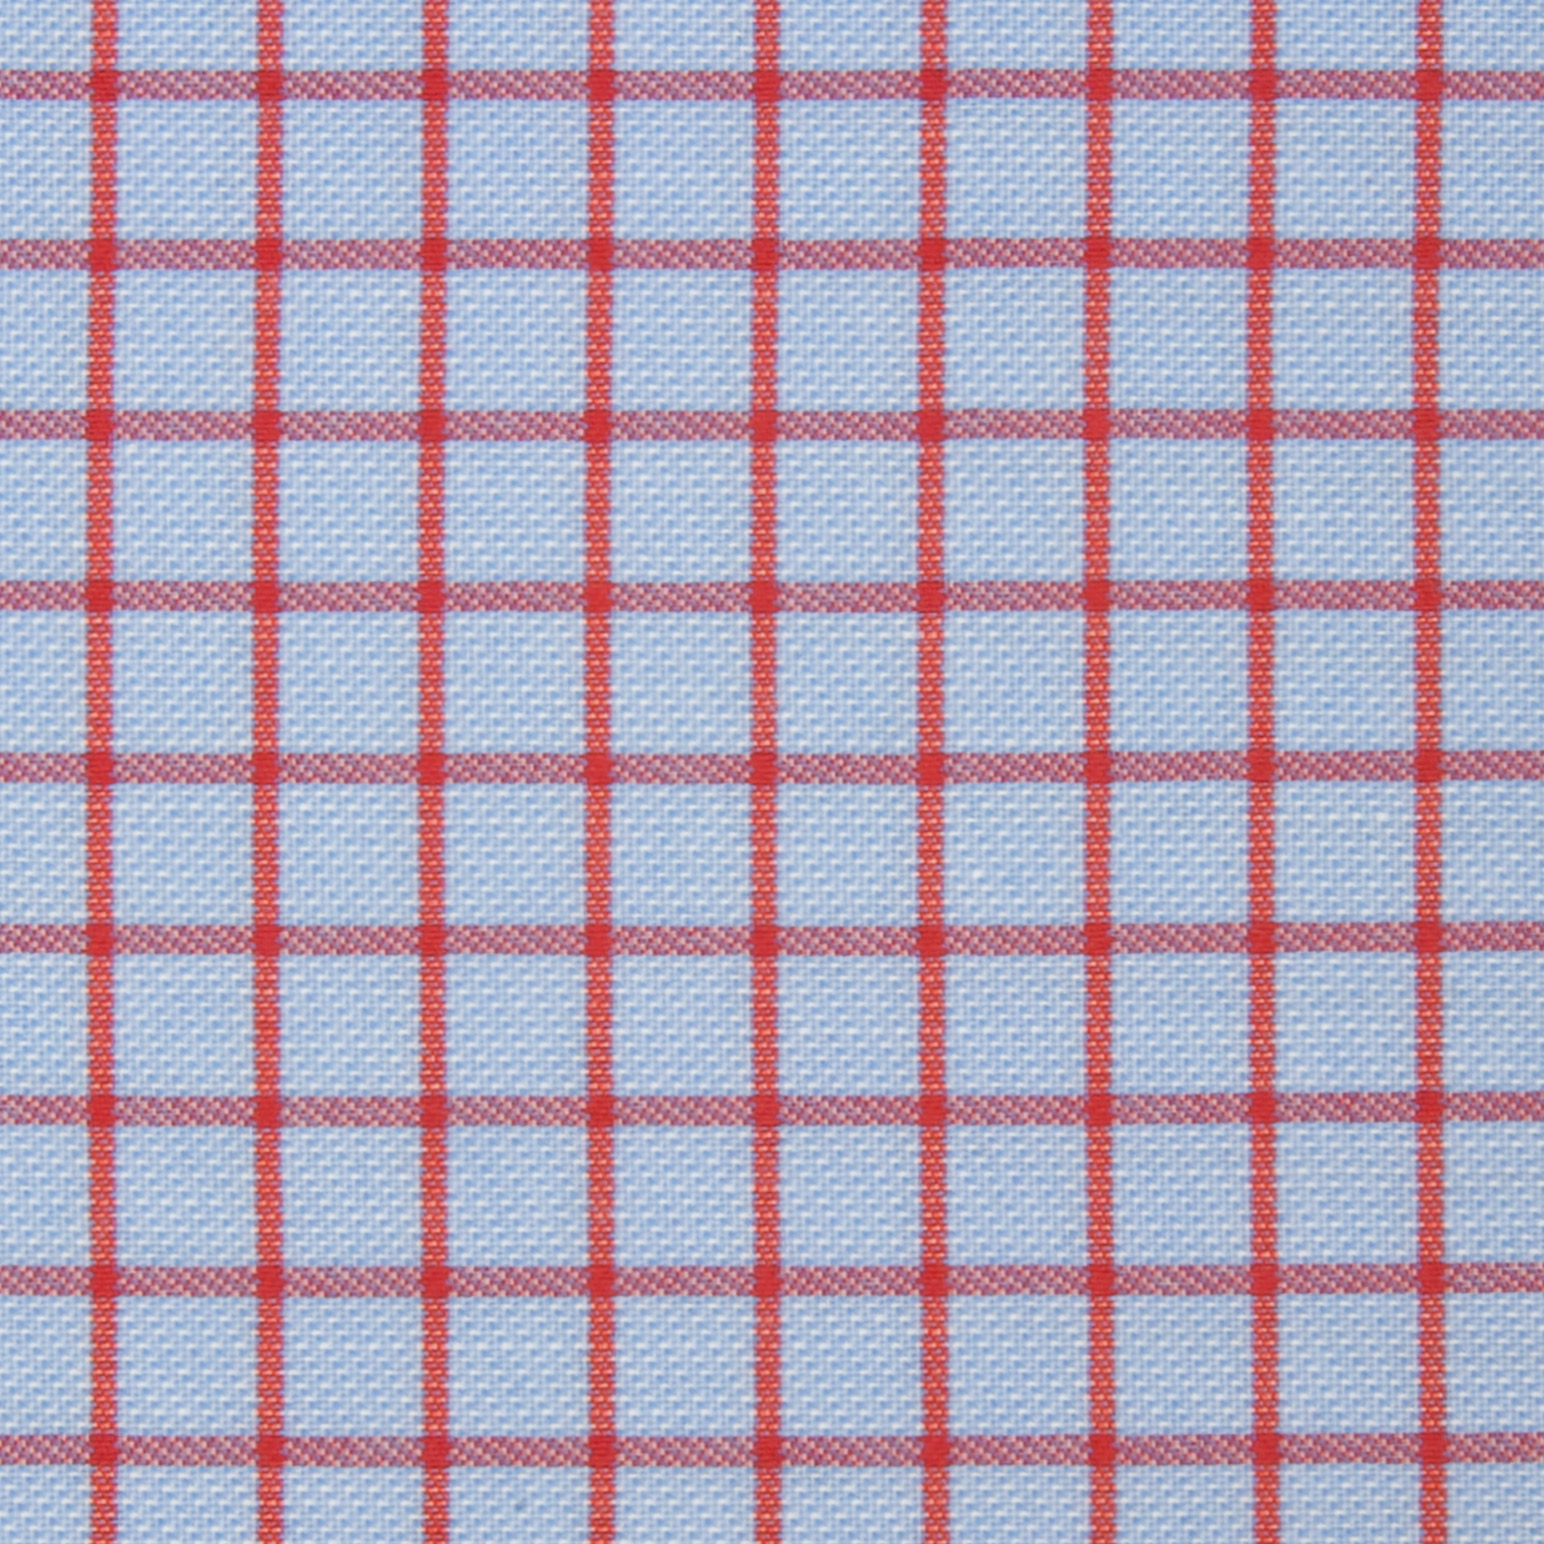 Buy tailor made shirts online - Arturo Collection - Red Check on Blue